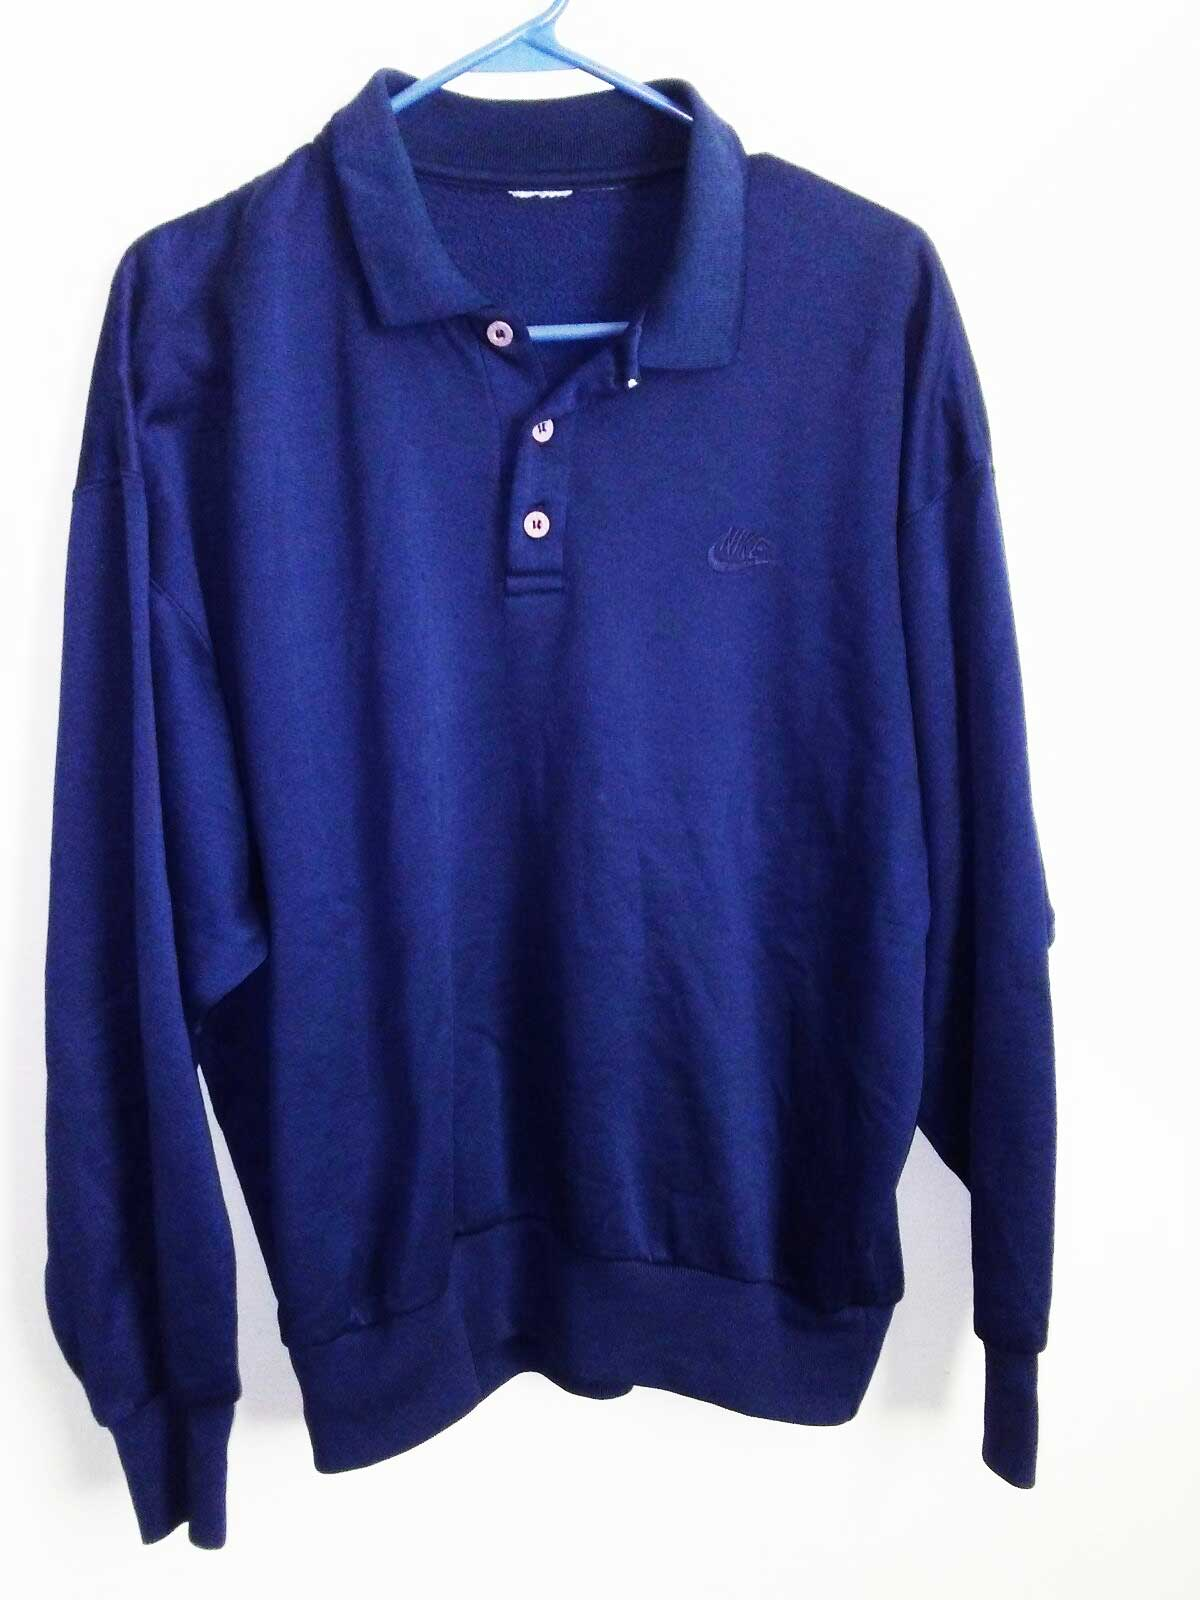 Nike Long Sleeves Vintage Golf Shirt